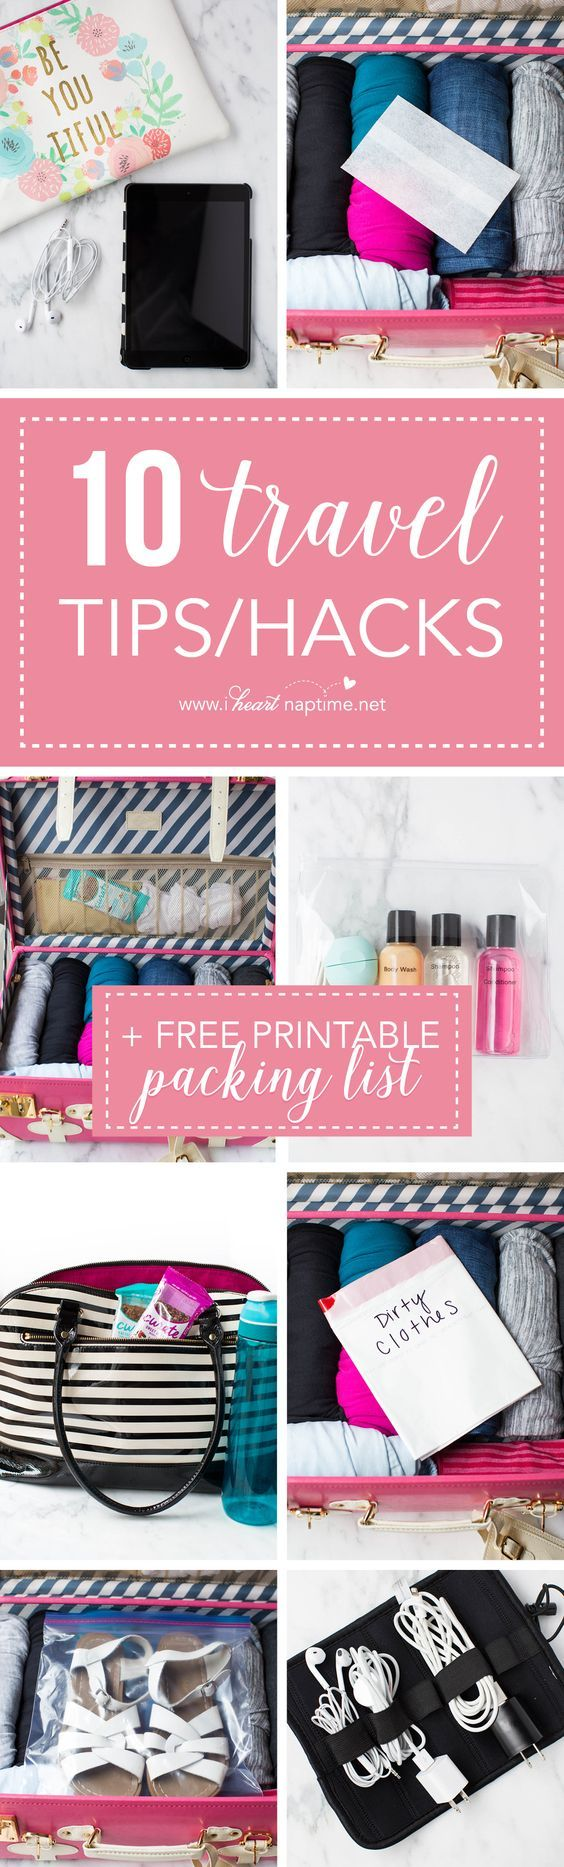 10 essential travel tips and hacks + free printable packing list - extremely…